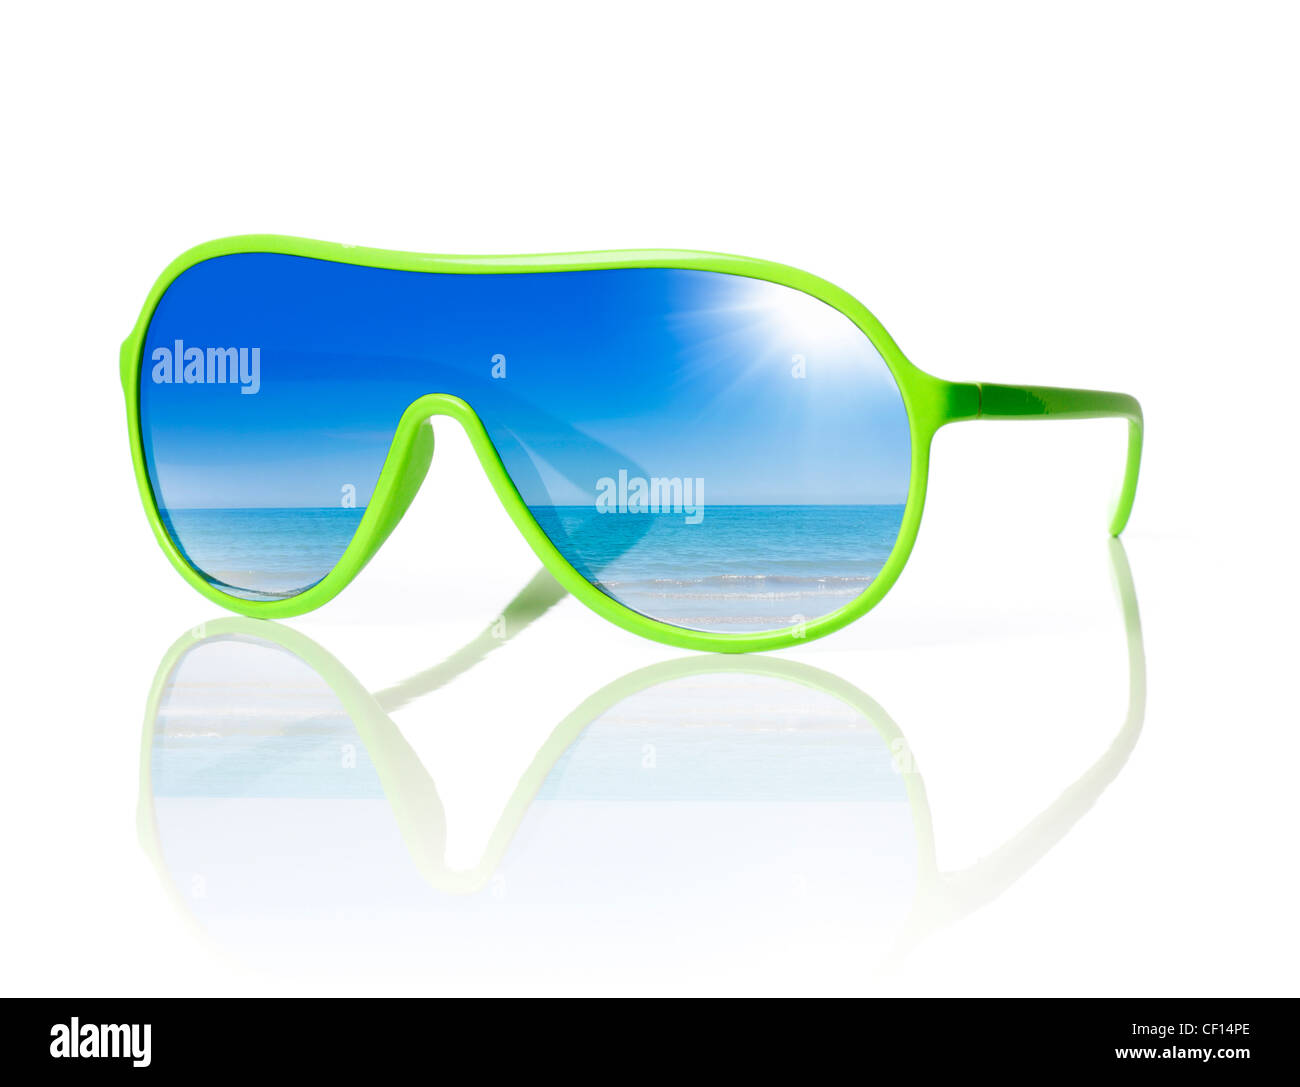 1980s styled cheap plastic sunglasses with reflection of the sea. - Stock Image